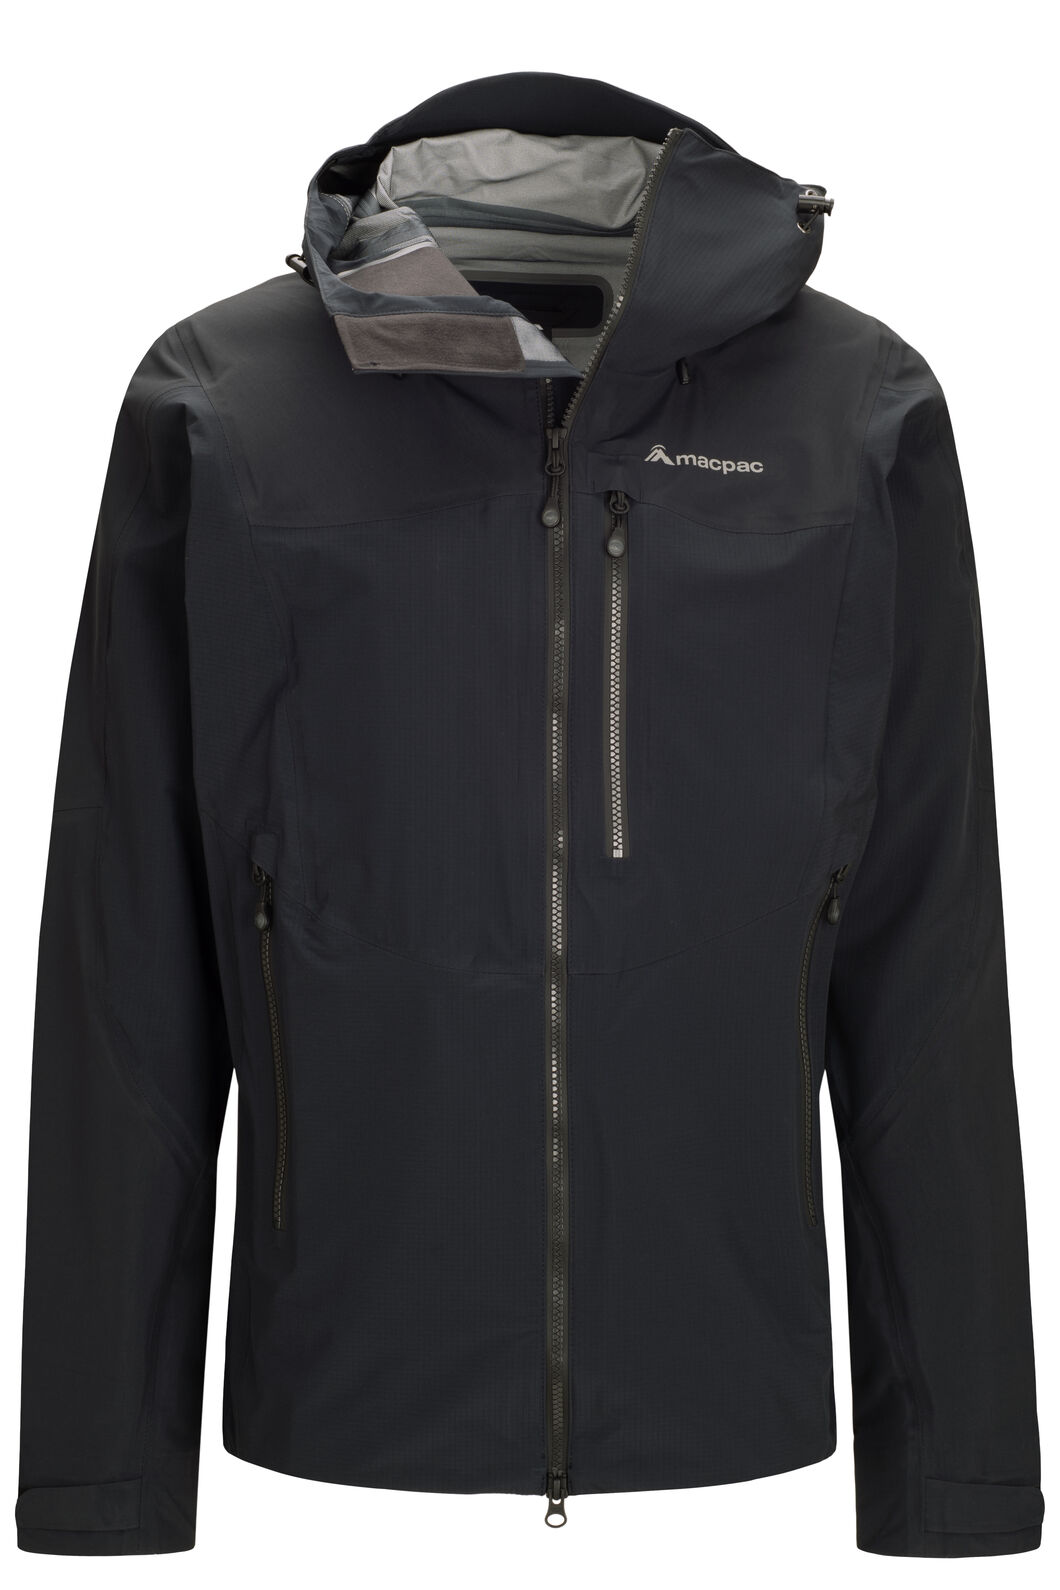 Macpac Lightweight Prophet Pertex® Rain Jacket — Men's, Black/Black, hi-res